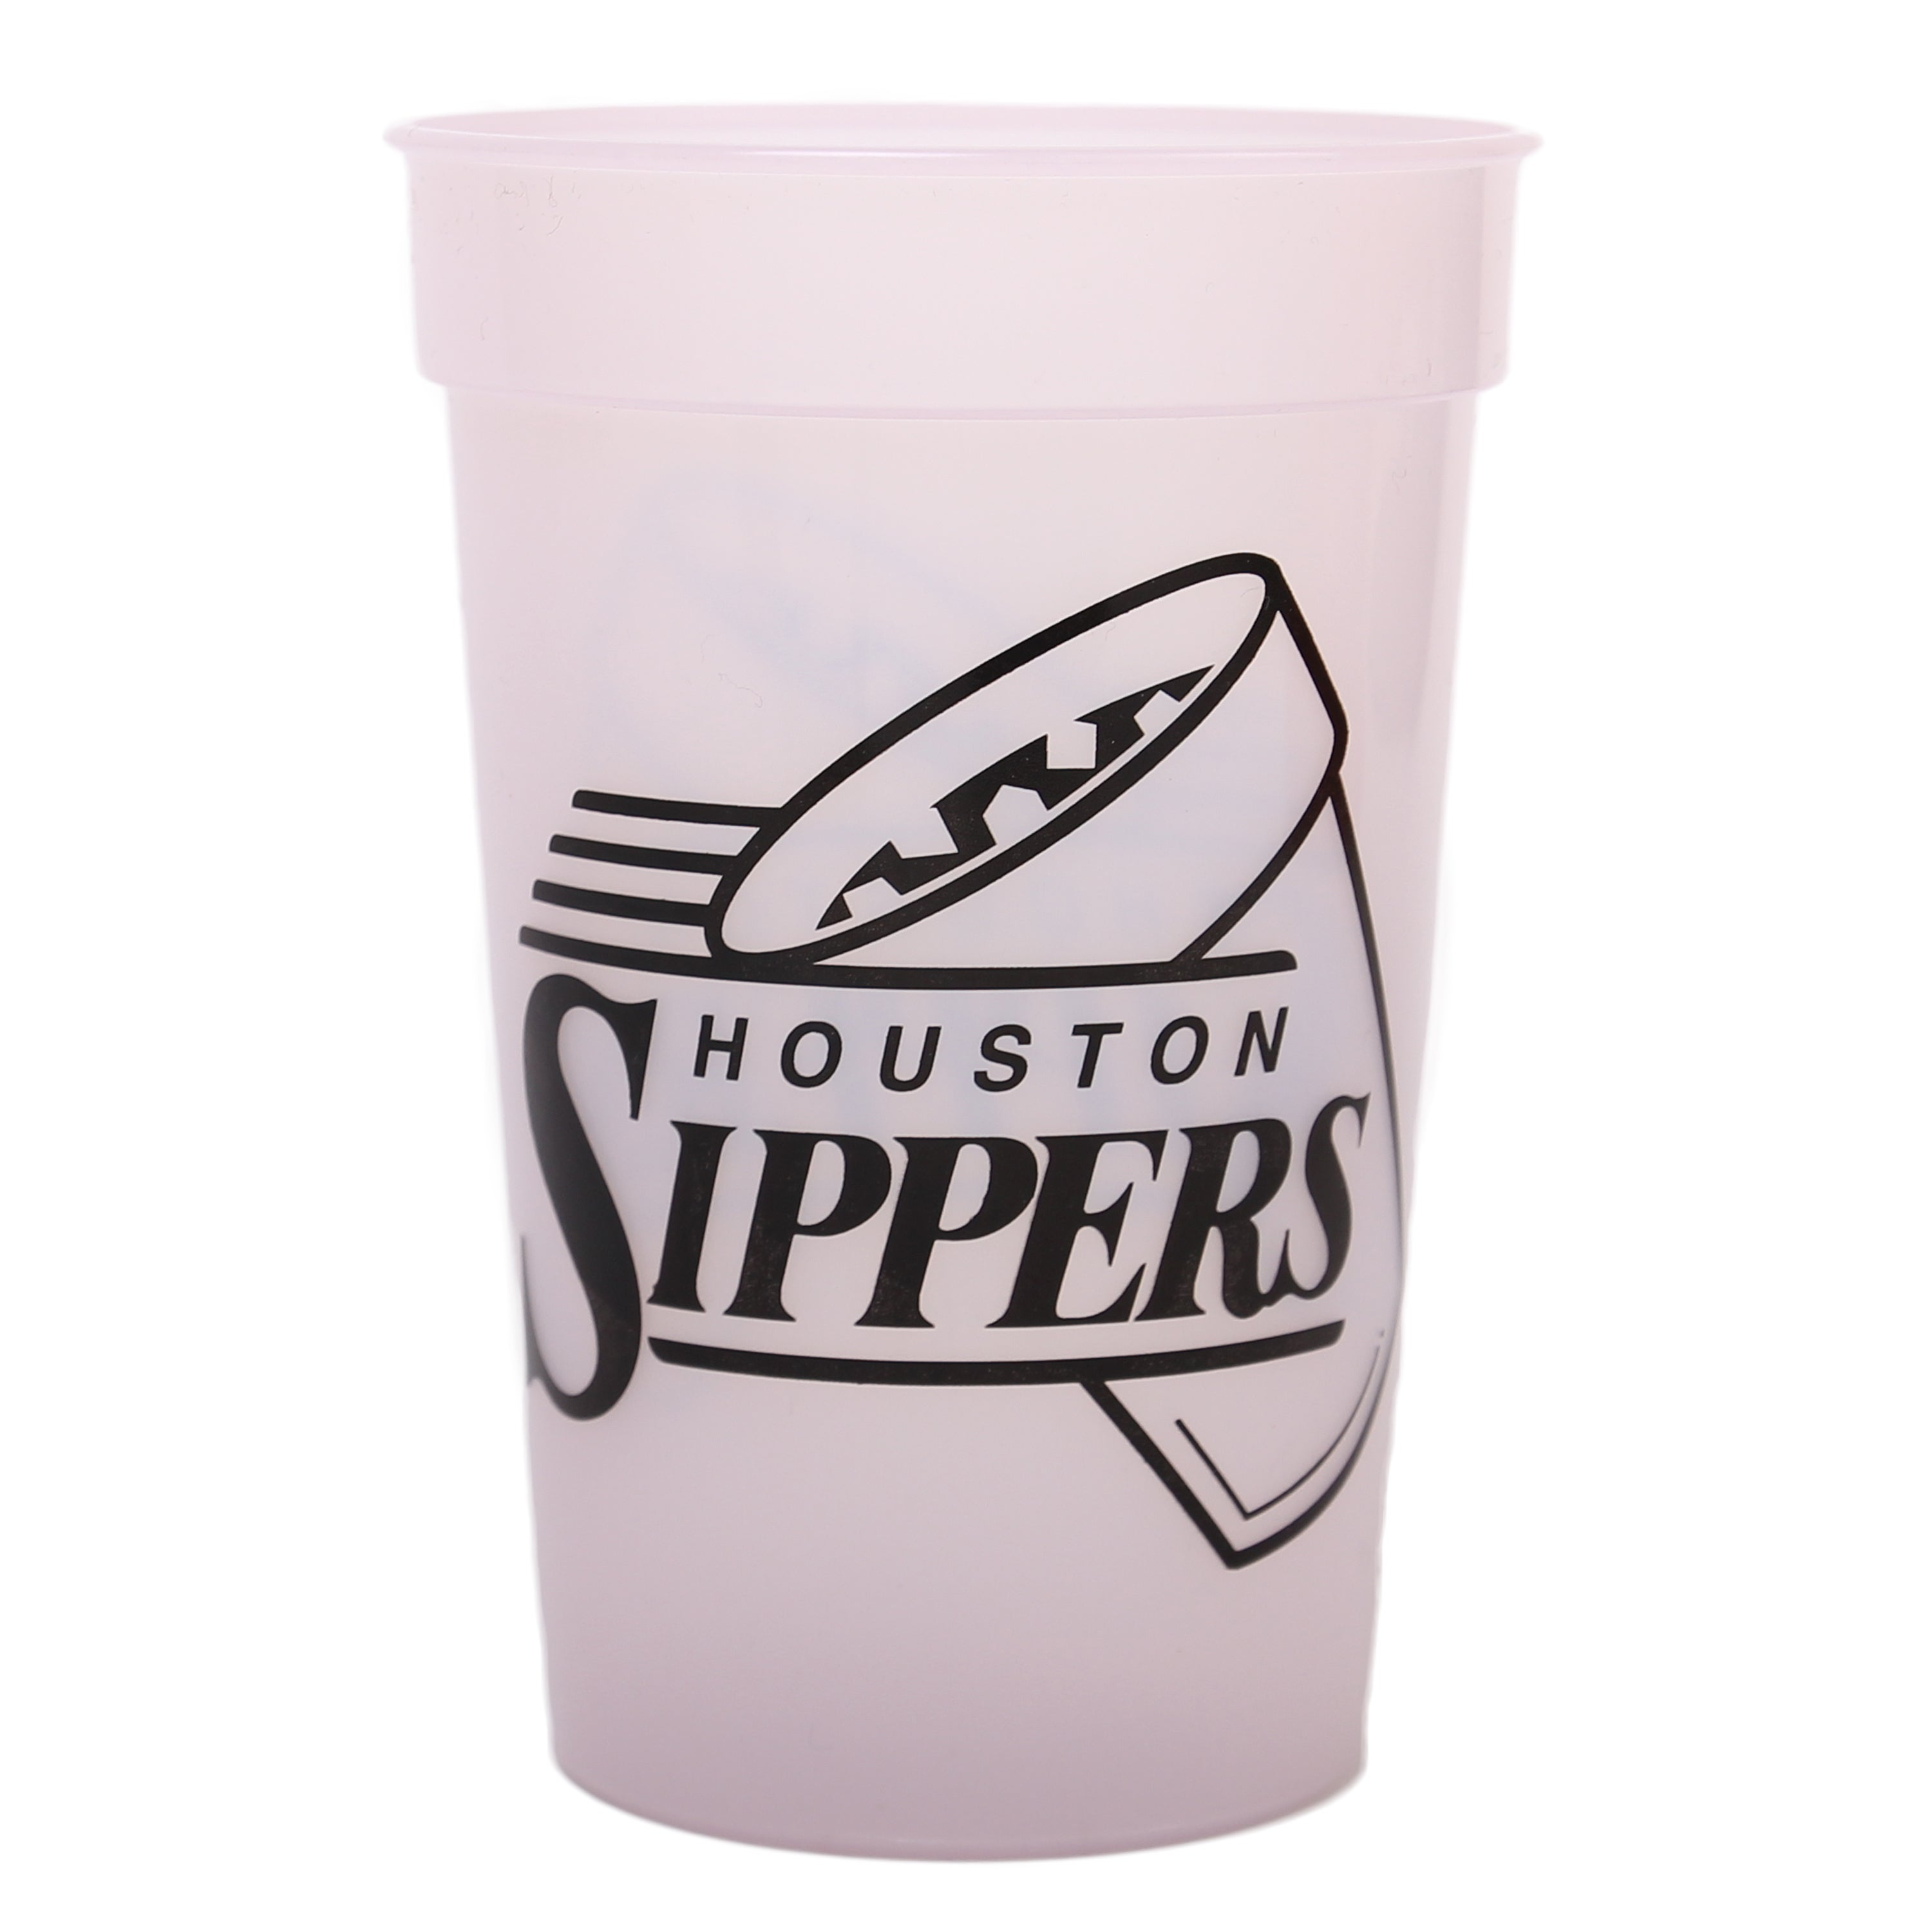 Houston Sippers Cup Purple Mood Cup Paid In Texas